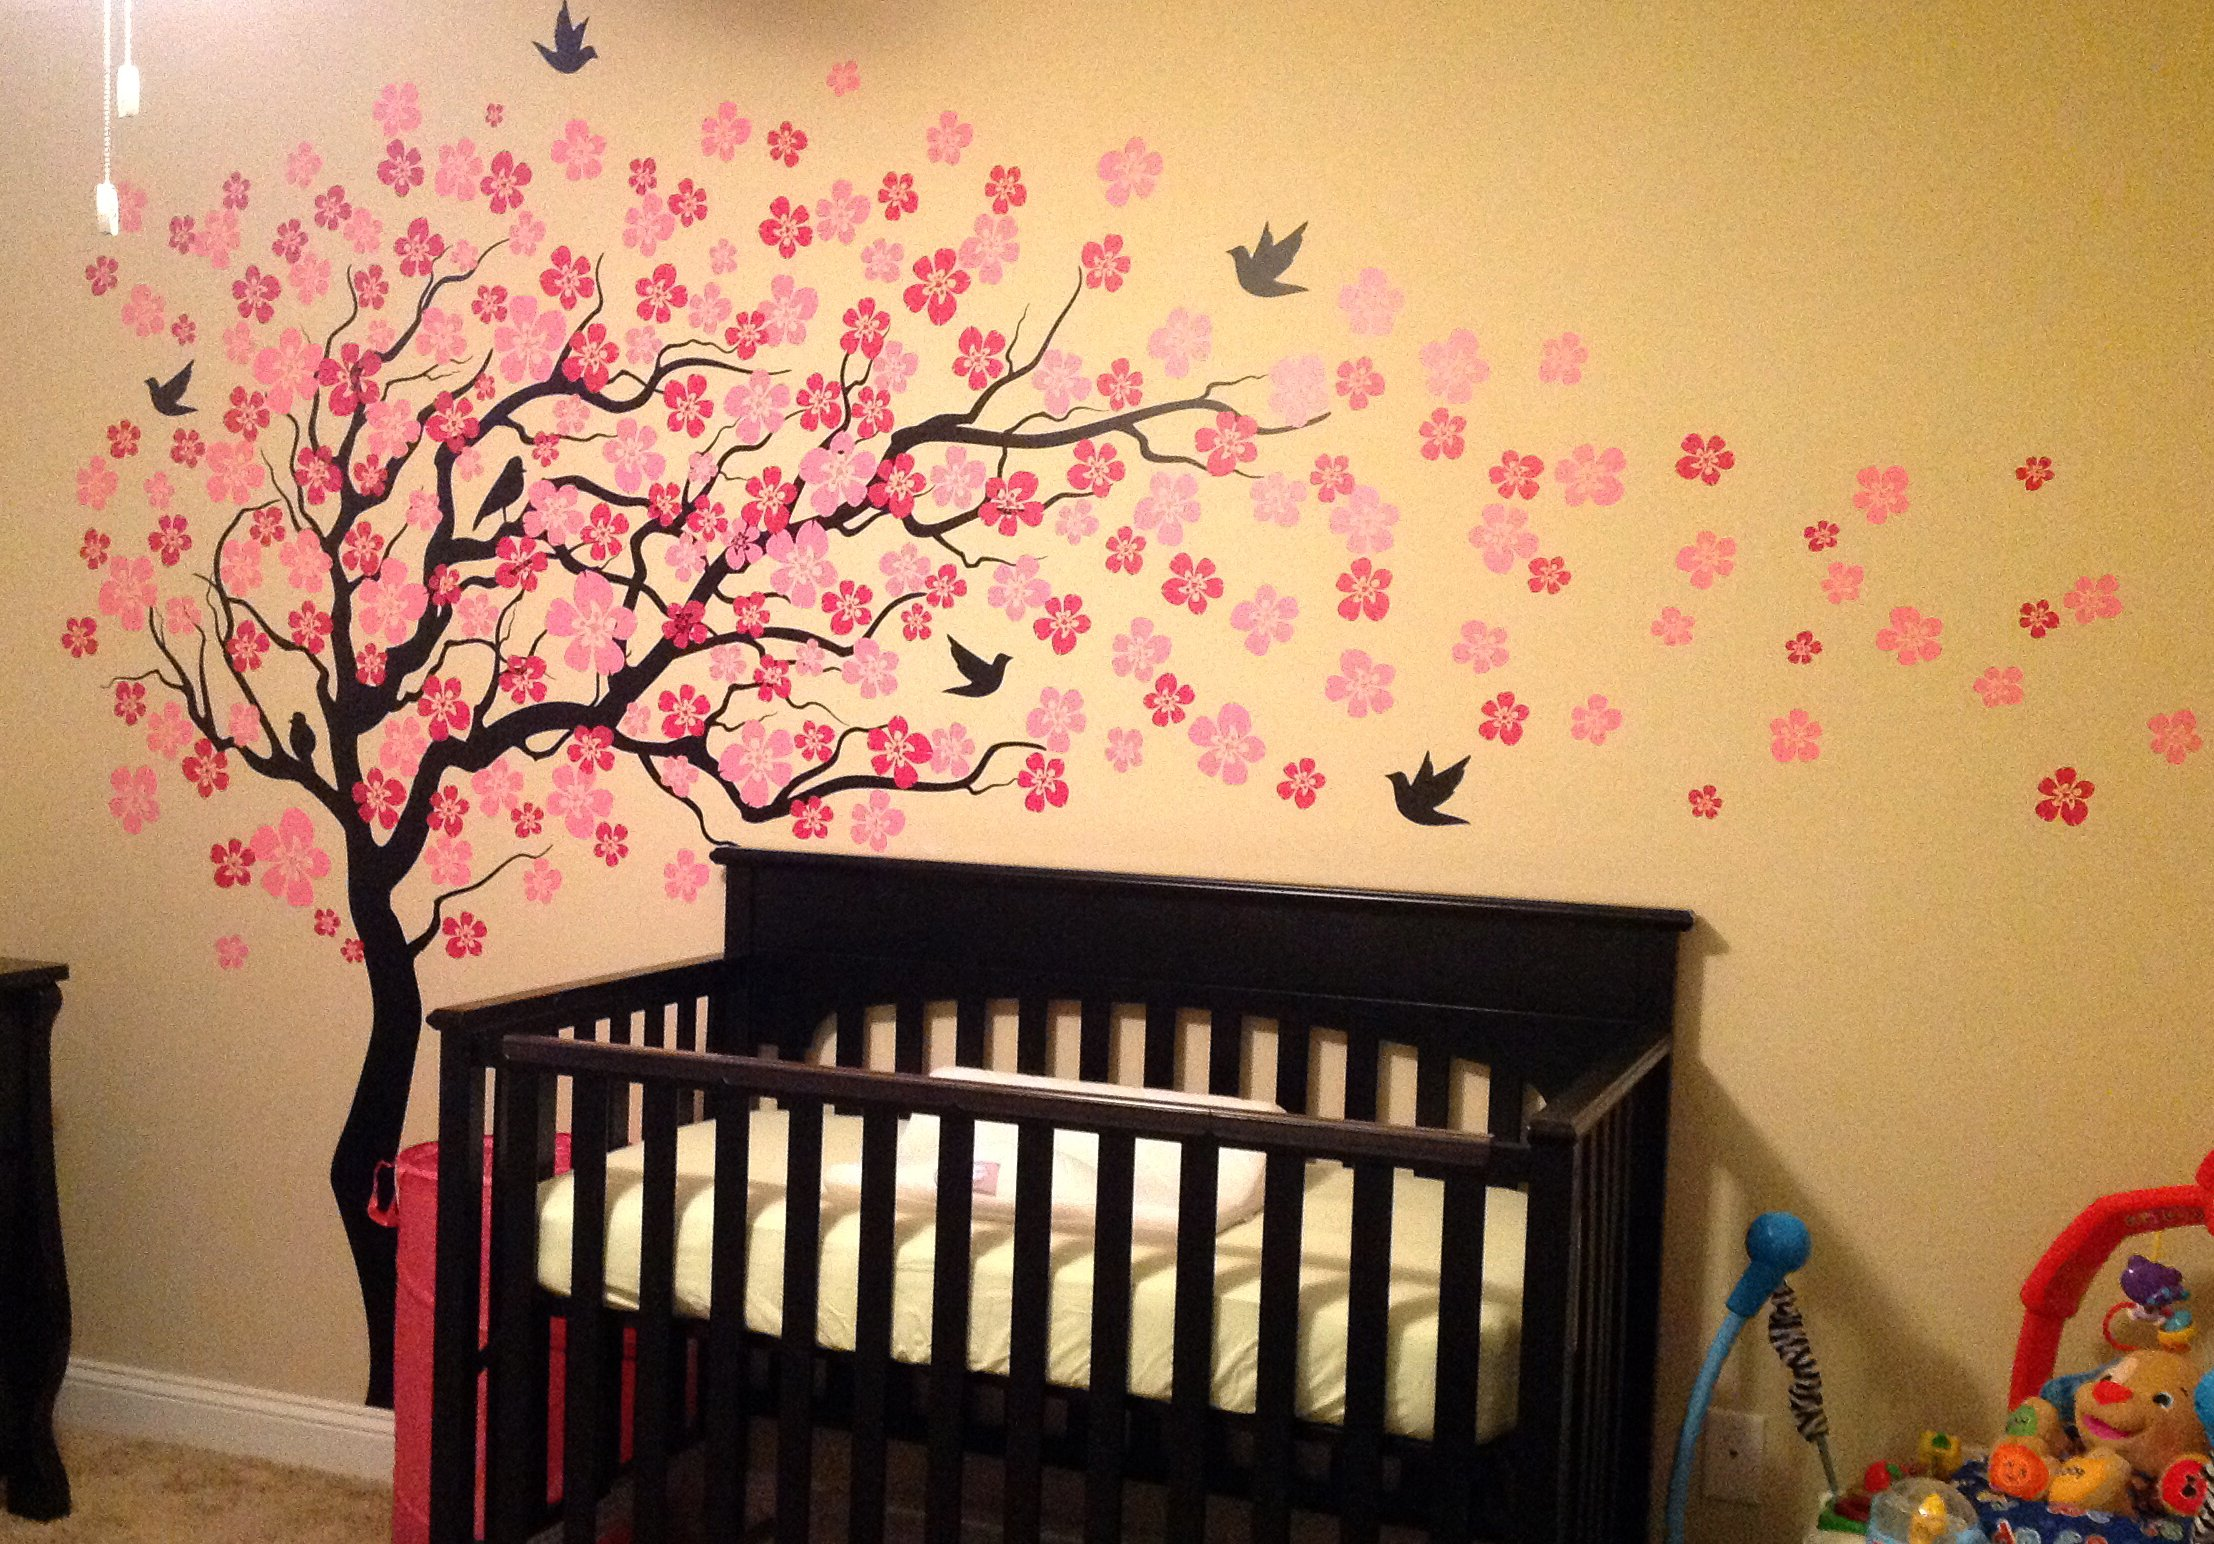 Pop Decors Removable Vinyl Art Wall Decals Mural, Cherry Blossom Tree/Dark Brown/Hot Pink by Pop Decors (Image #1)